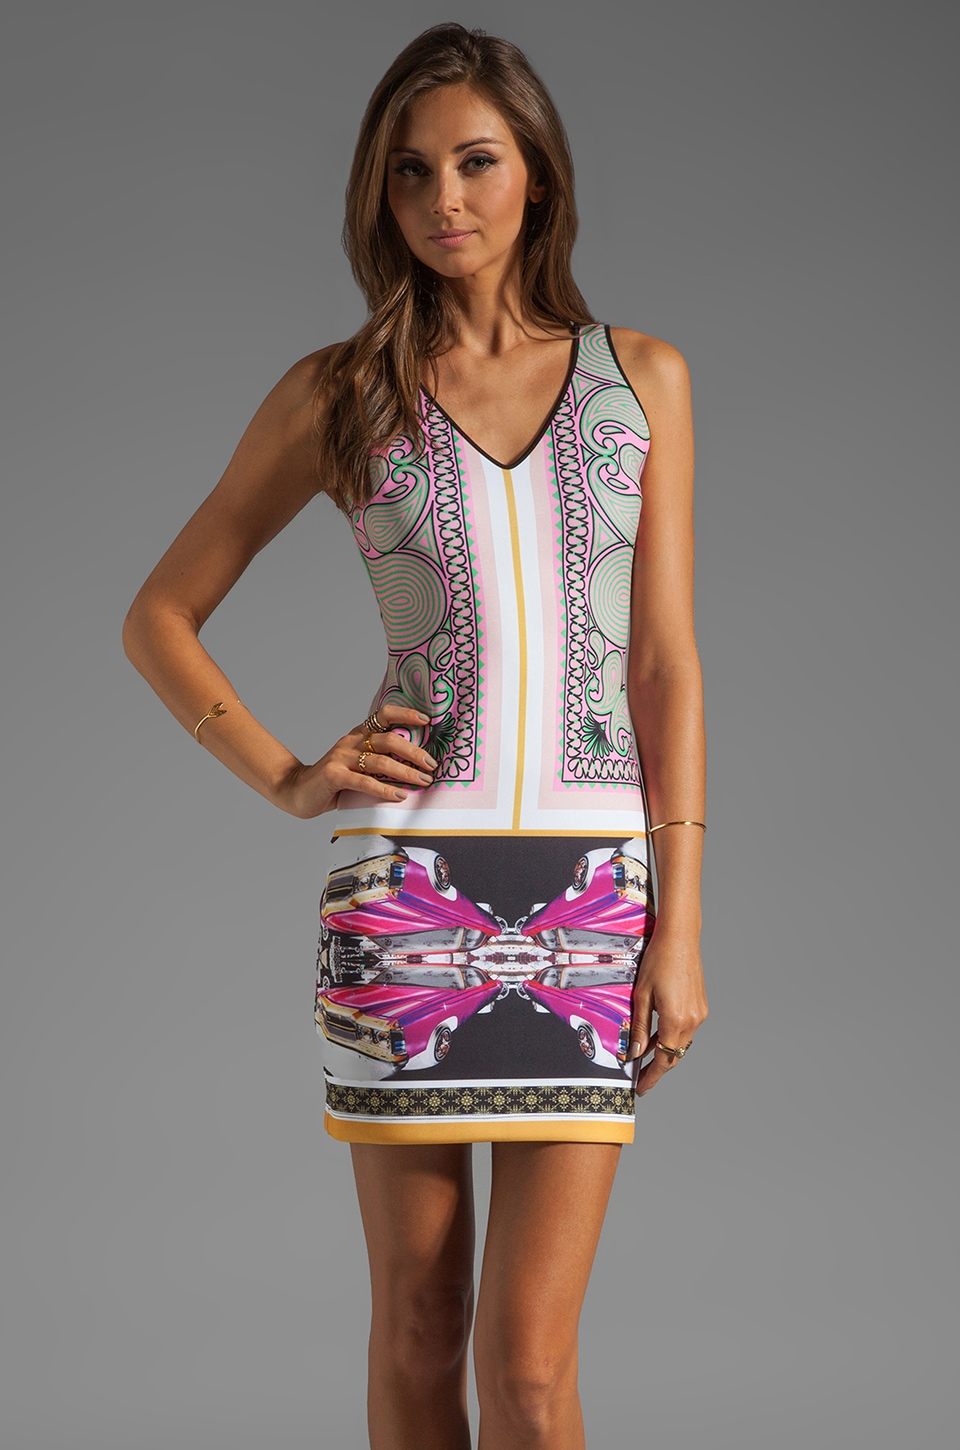 Clover Canyon Candy Cars Neoprene Dress in Multi